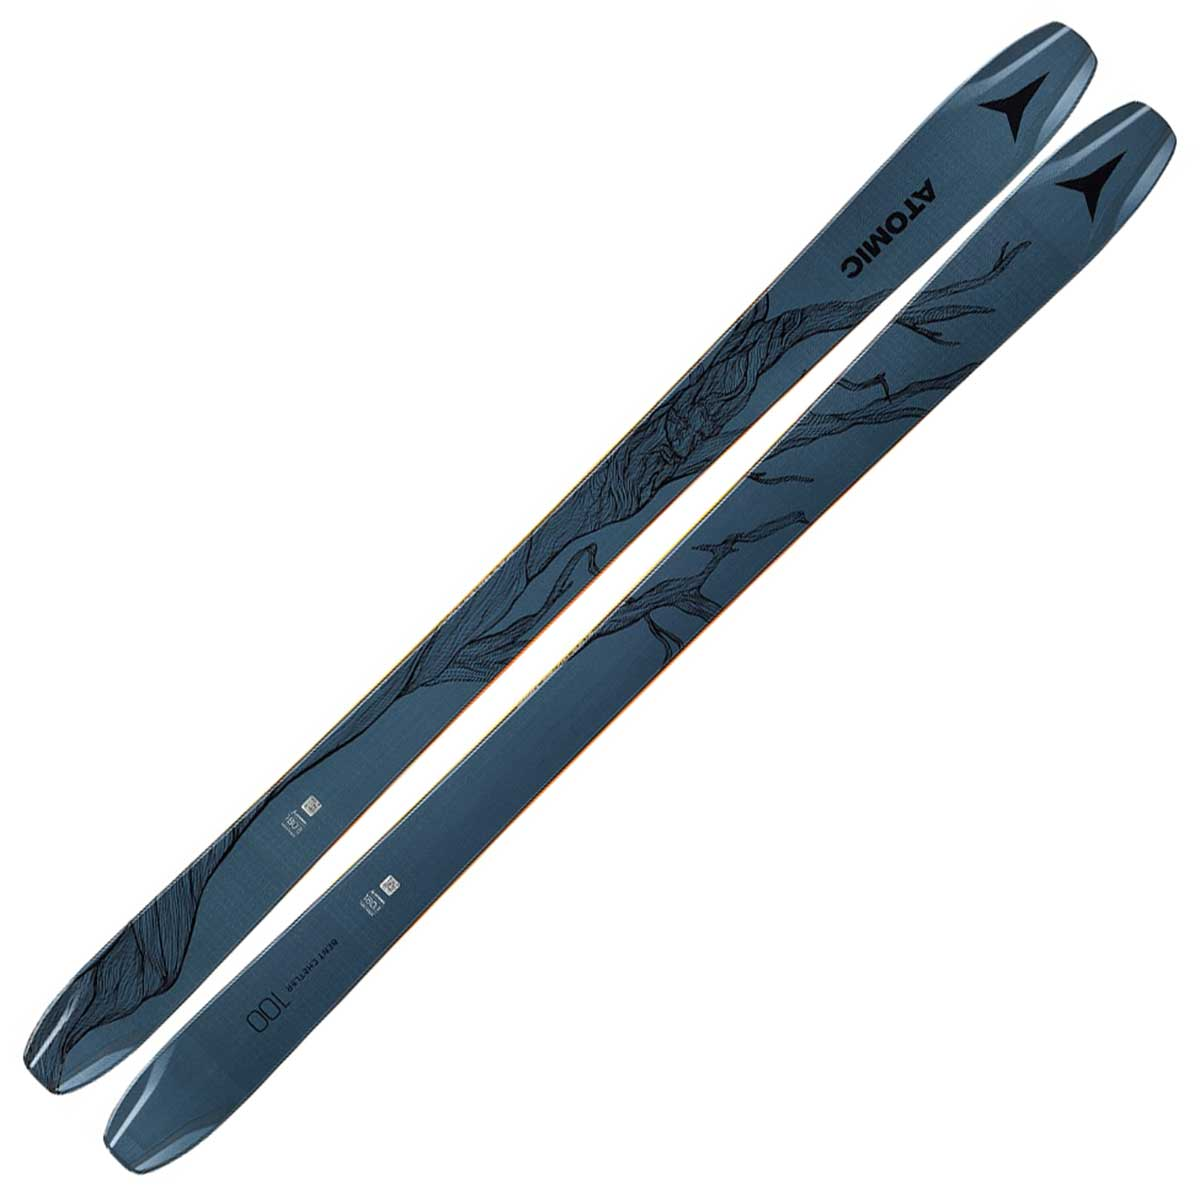 Top of Atomic Bent Chetler 100 skis in Blue